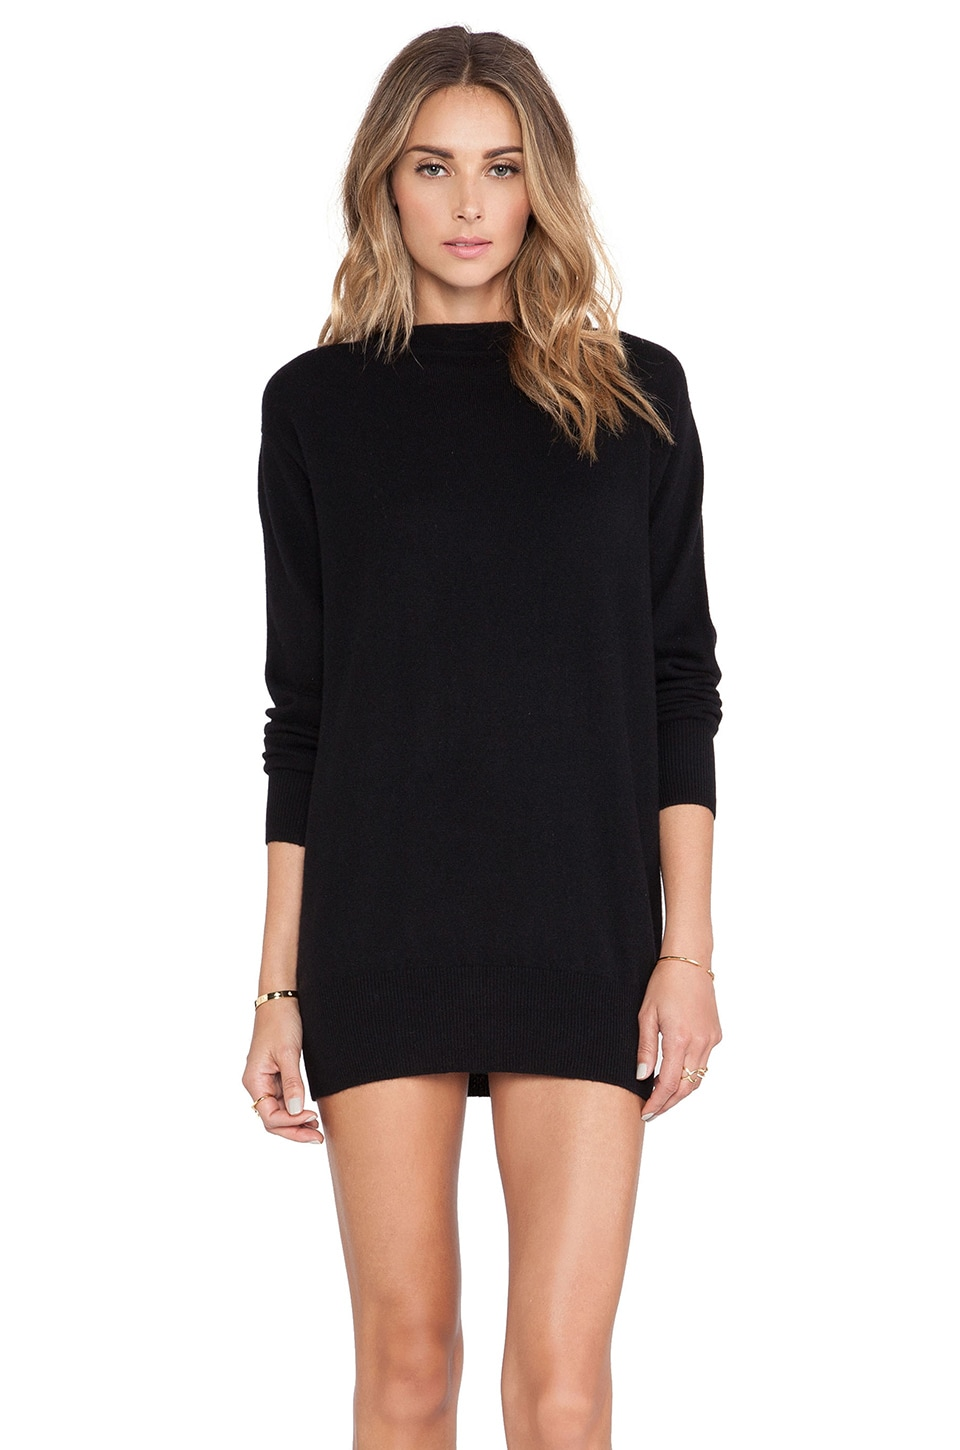 DemyLee Alyssa Cashmere Sweater Dress in Black/Black